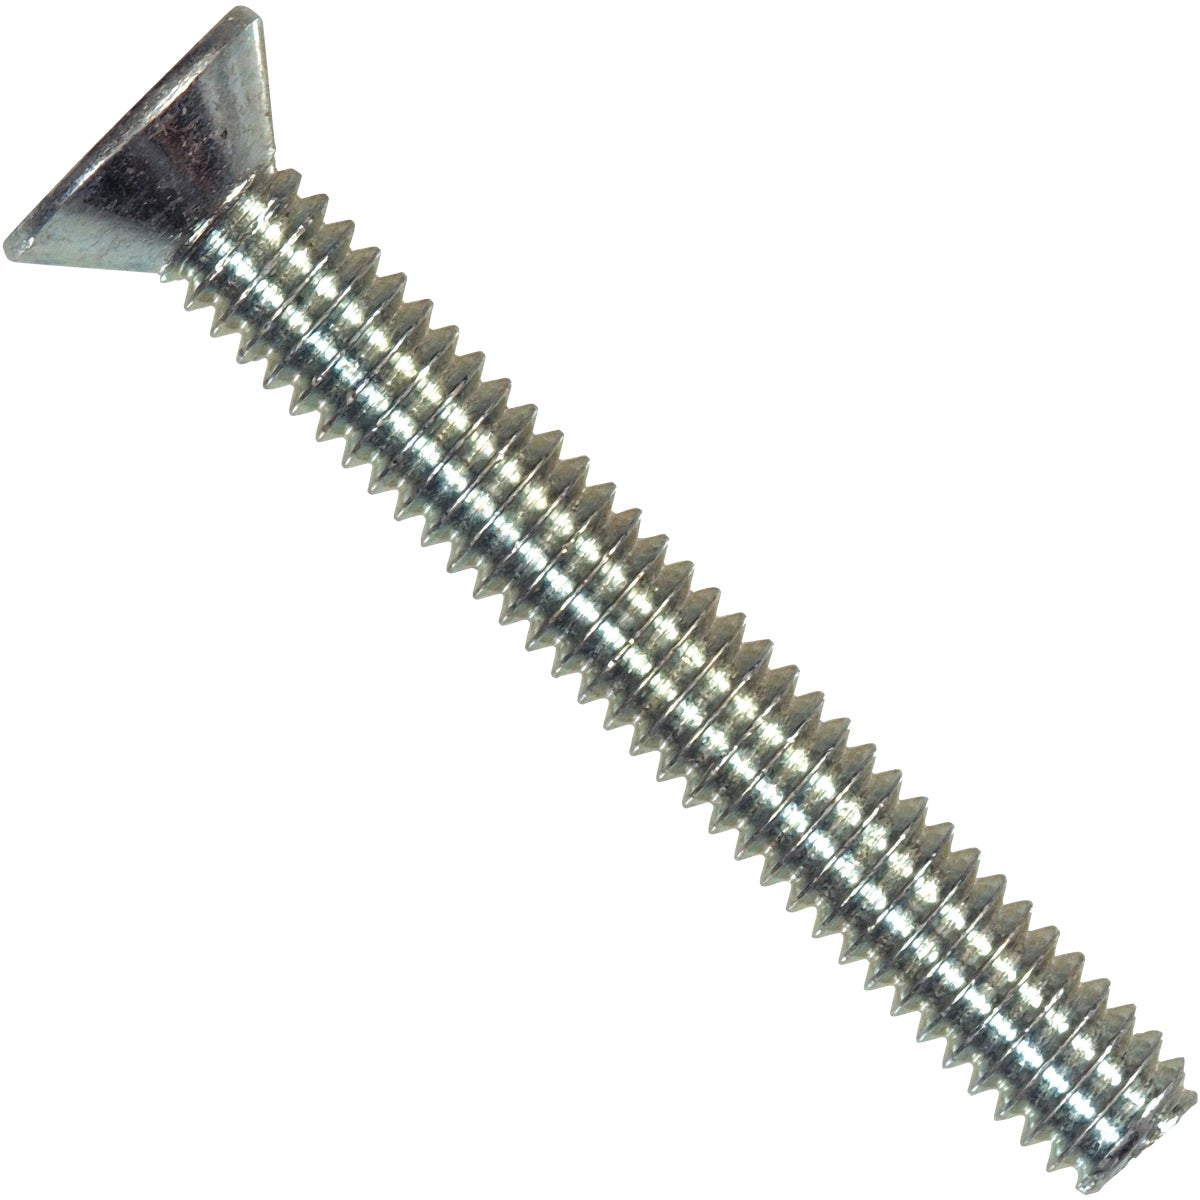 1/4-20X2 P FH MACH SCREW - 101143 by Hillman Fastener